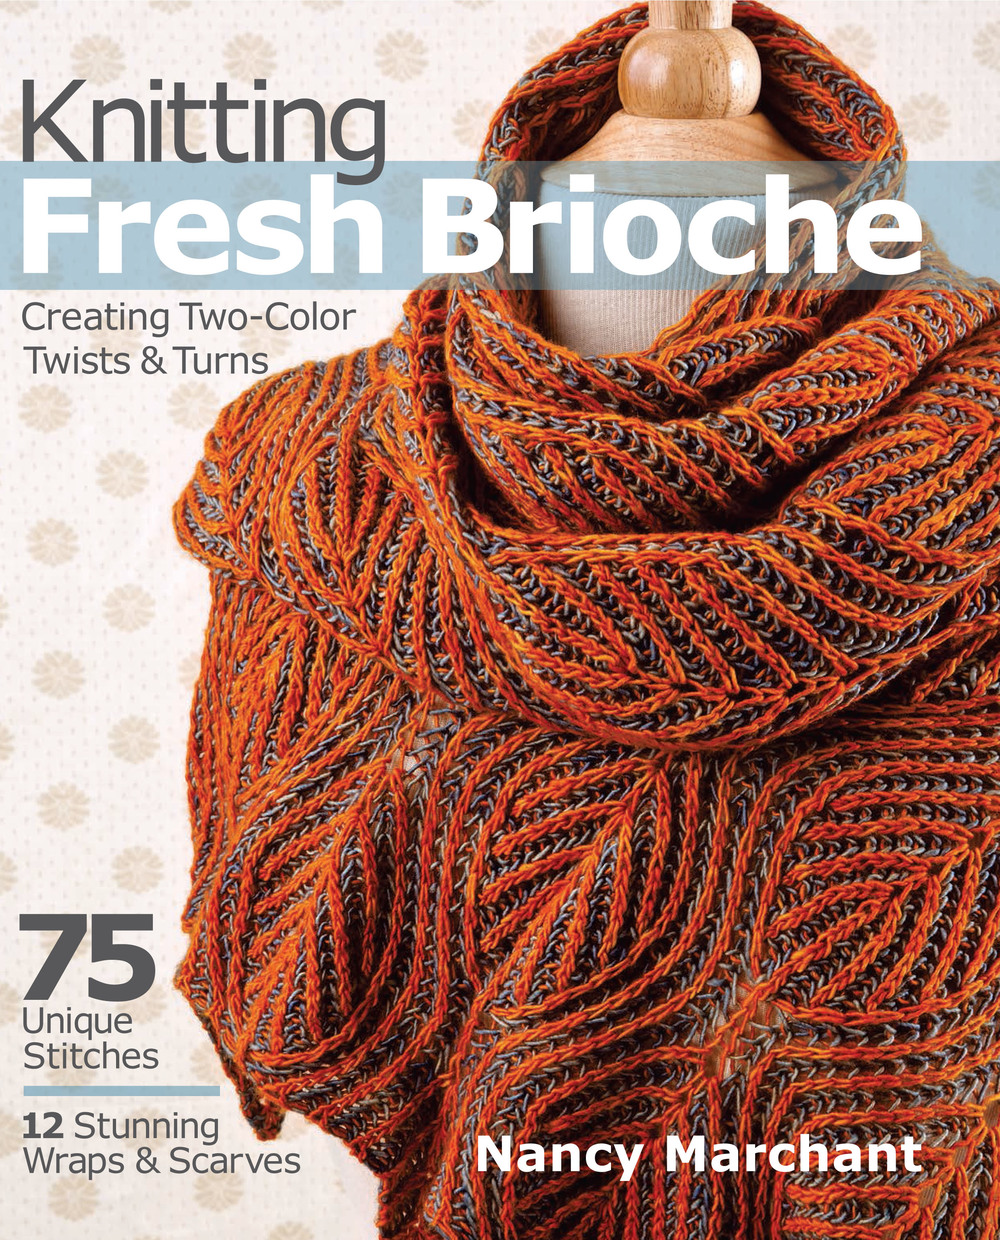 Knitting Fresh Brioche - Book Review   The Unapologetic Knitter